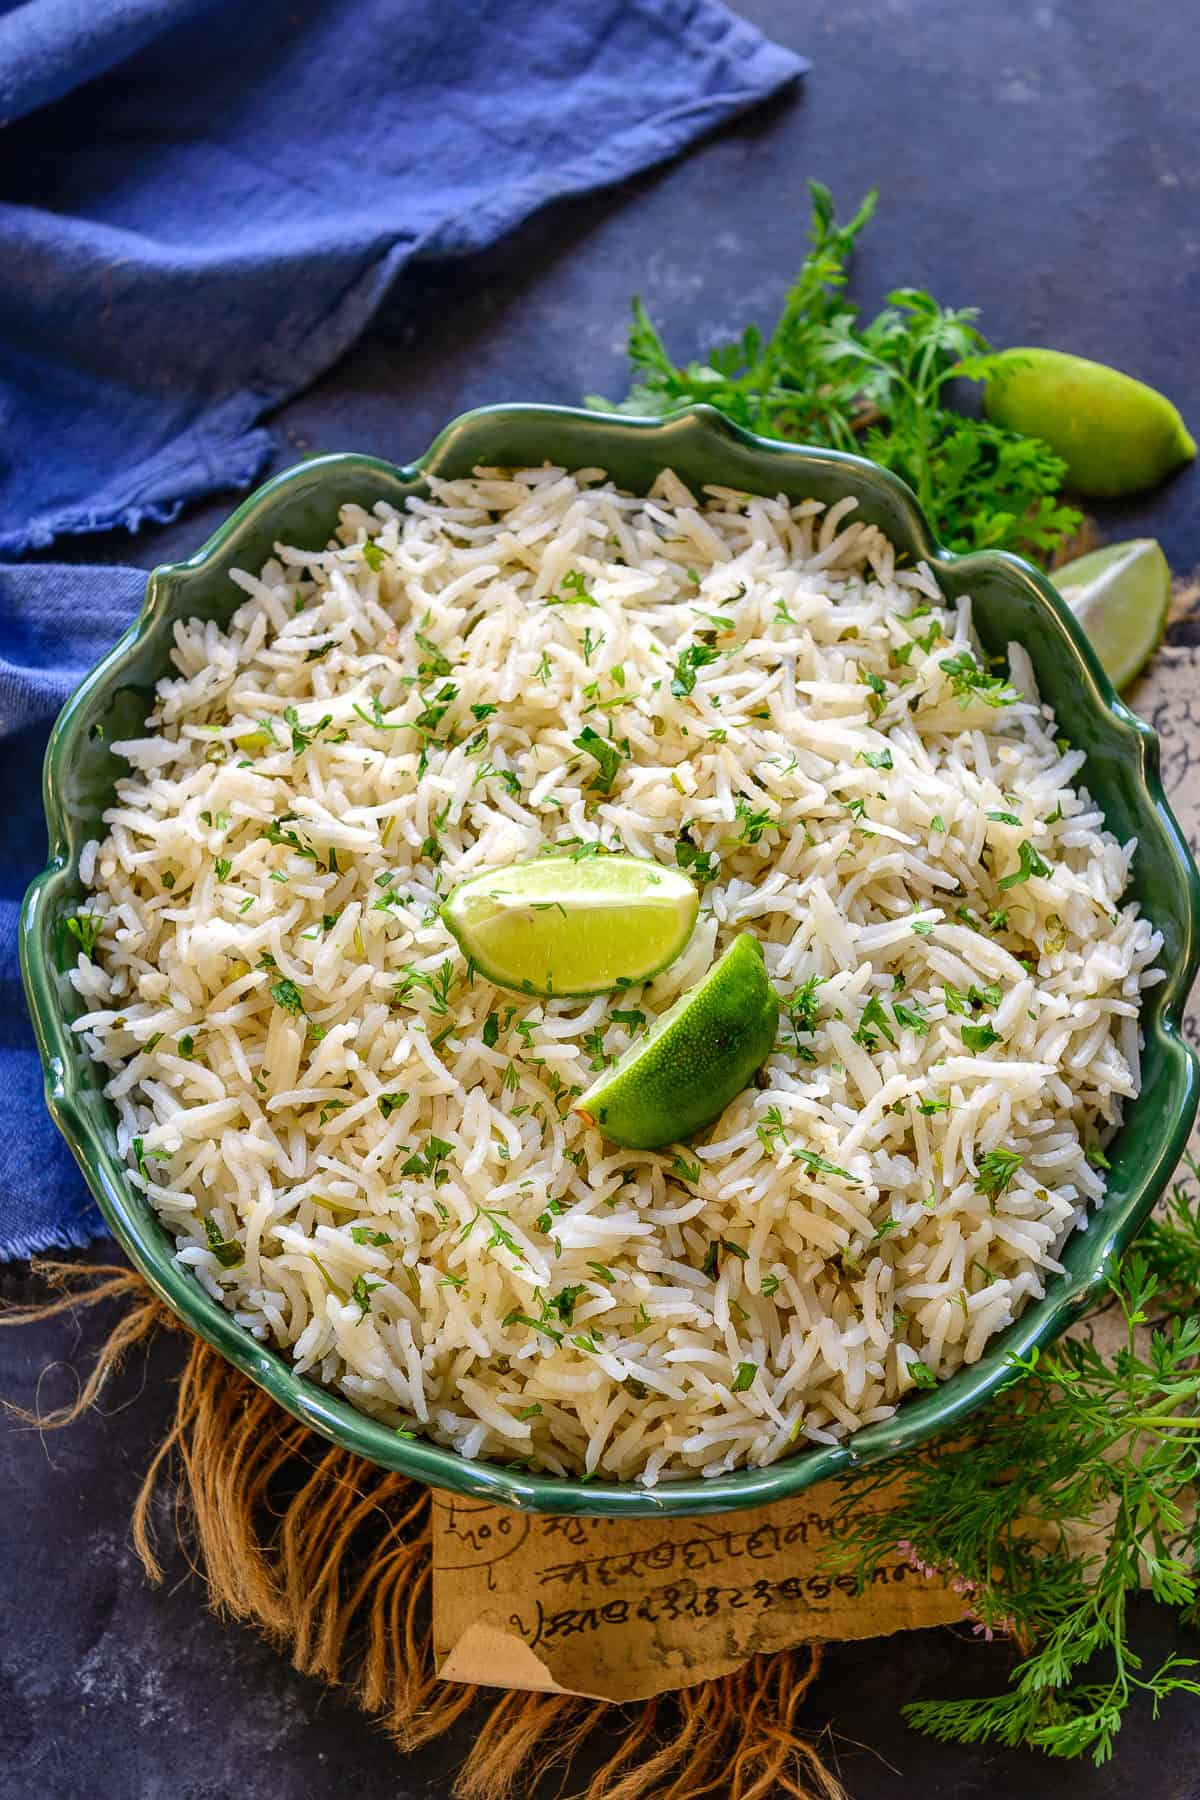 Cilantro lime Rice served in a bowl.